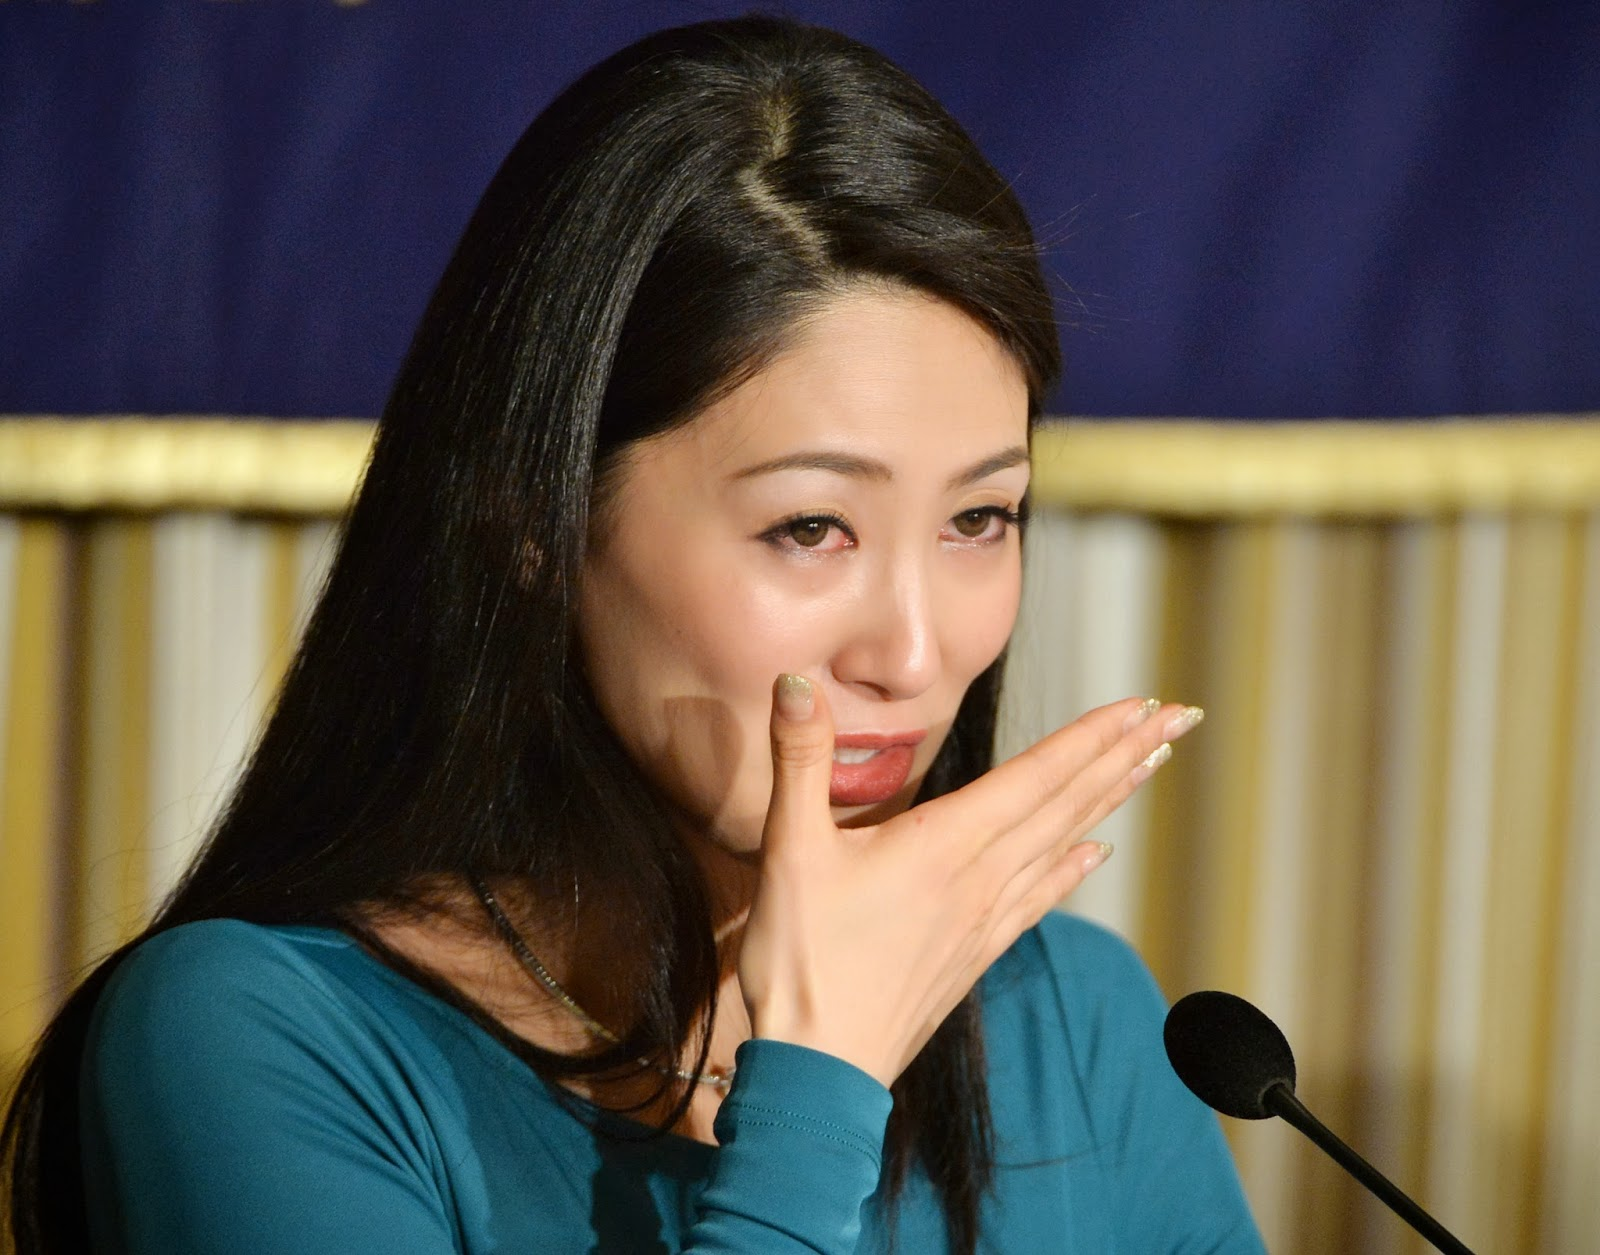 Harassment, Ikumi Yoshimatsu, Miss International-2012, Victims, Miss, Japan, , Weeping, Tokyo, Beauty, Queen, Suffering, Showbiz, Celebrities, Century,